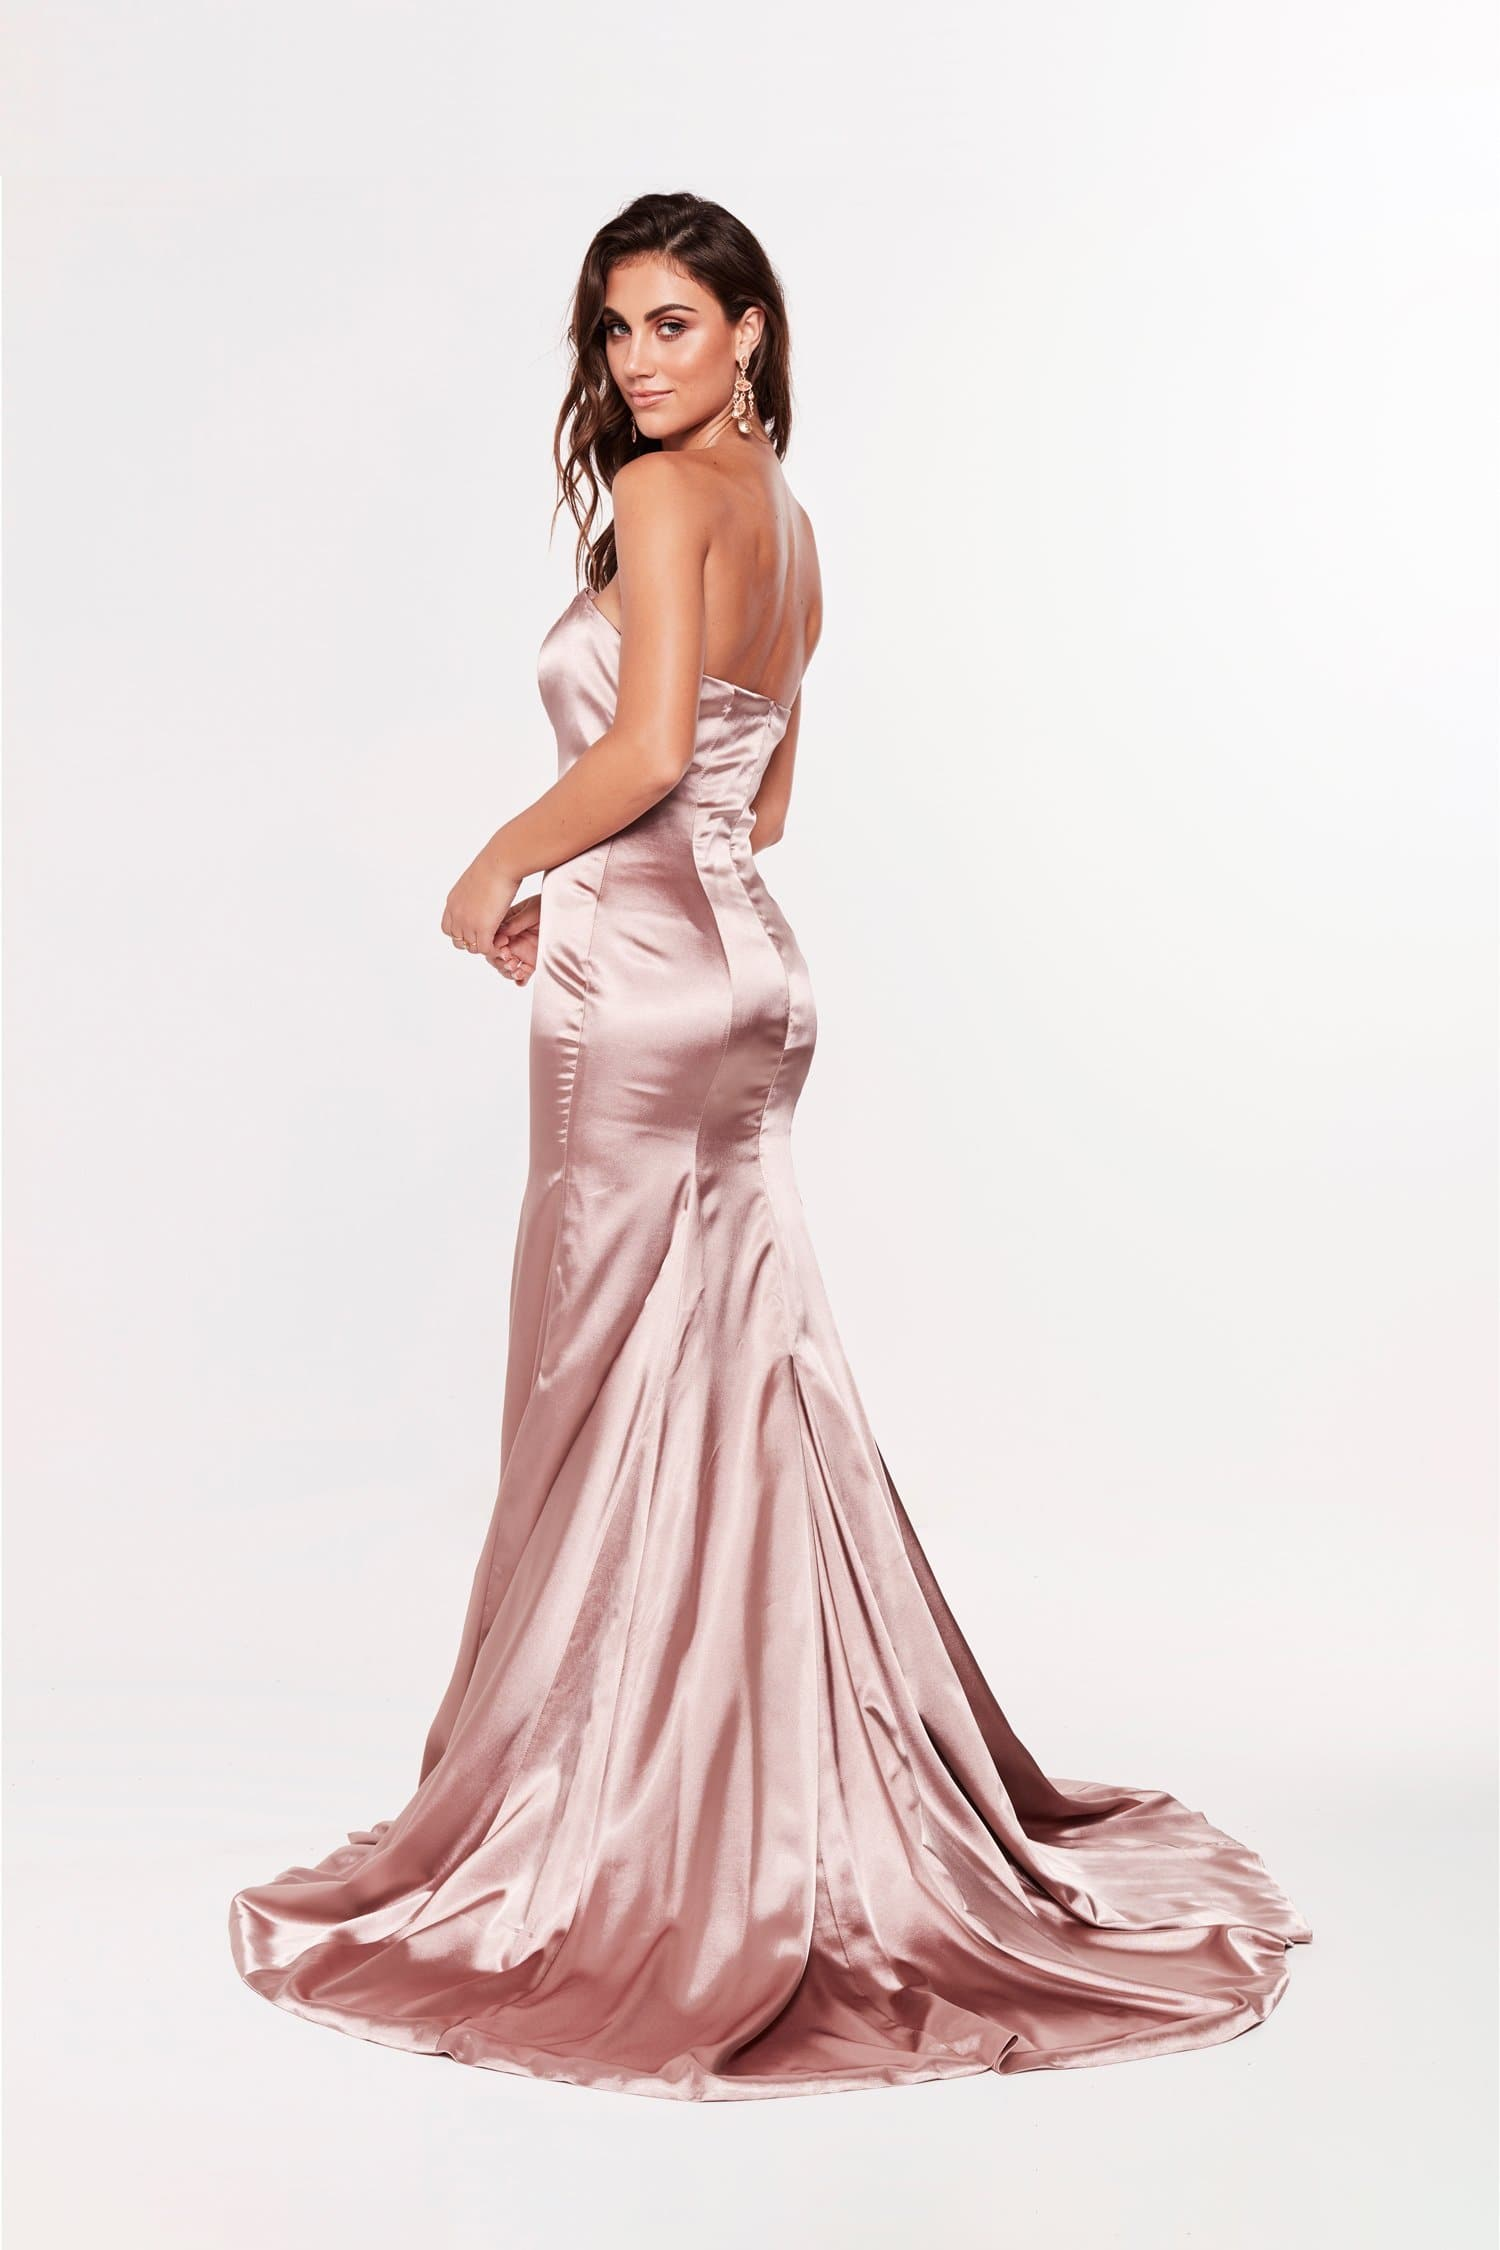 A&N Aino - Strapless Satin Gown with Mermaid Train in Mauve